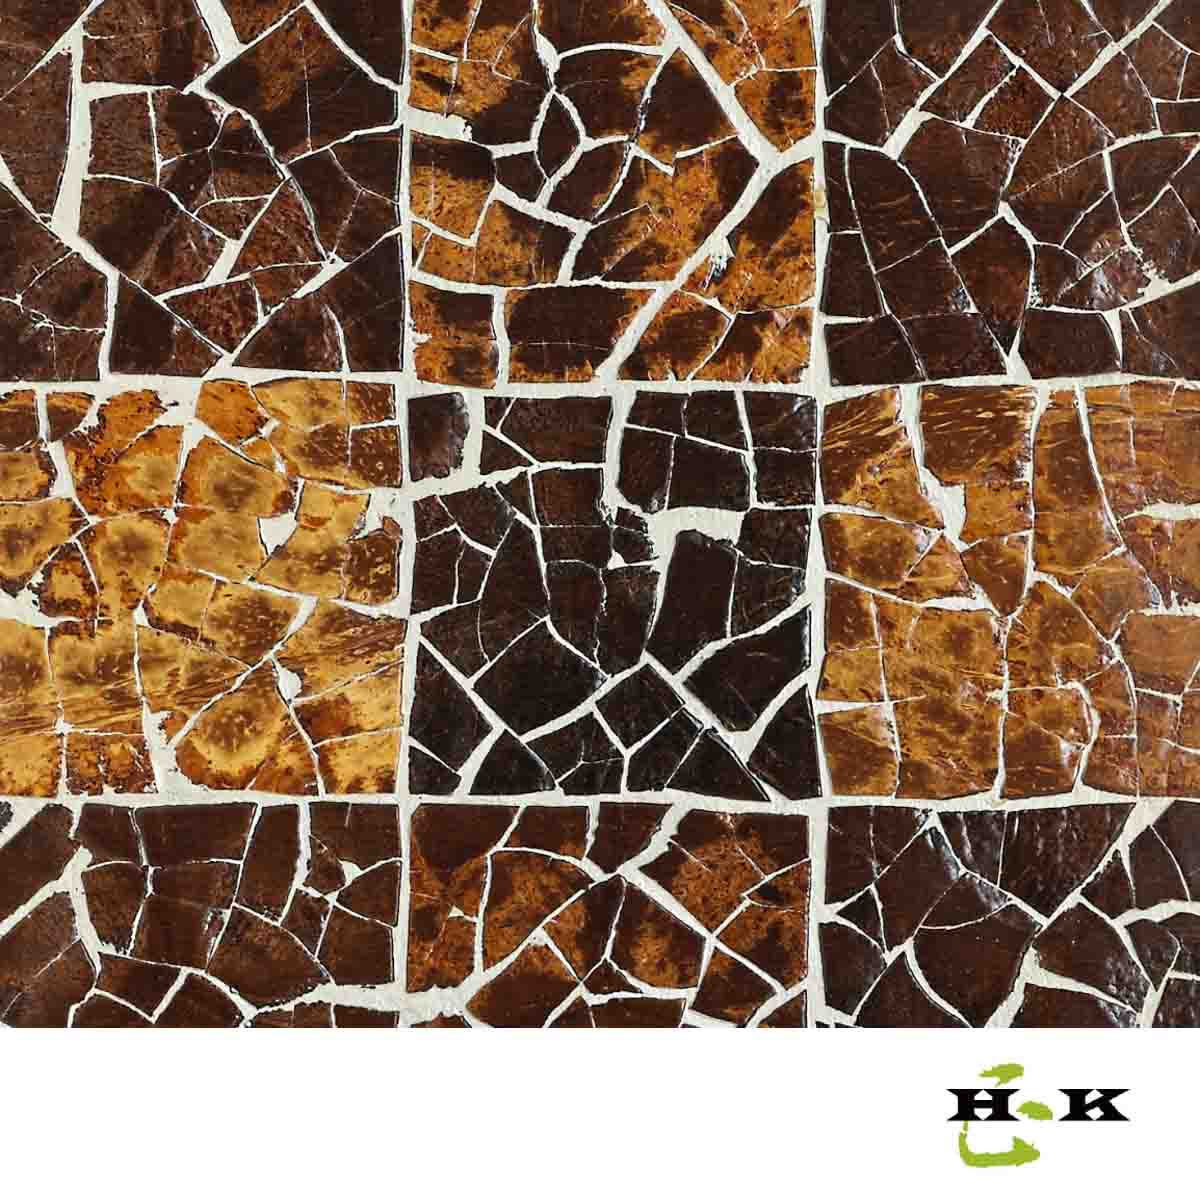 Decorative Wall Coverings : Decorative coconut panels wall covering